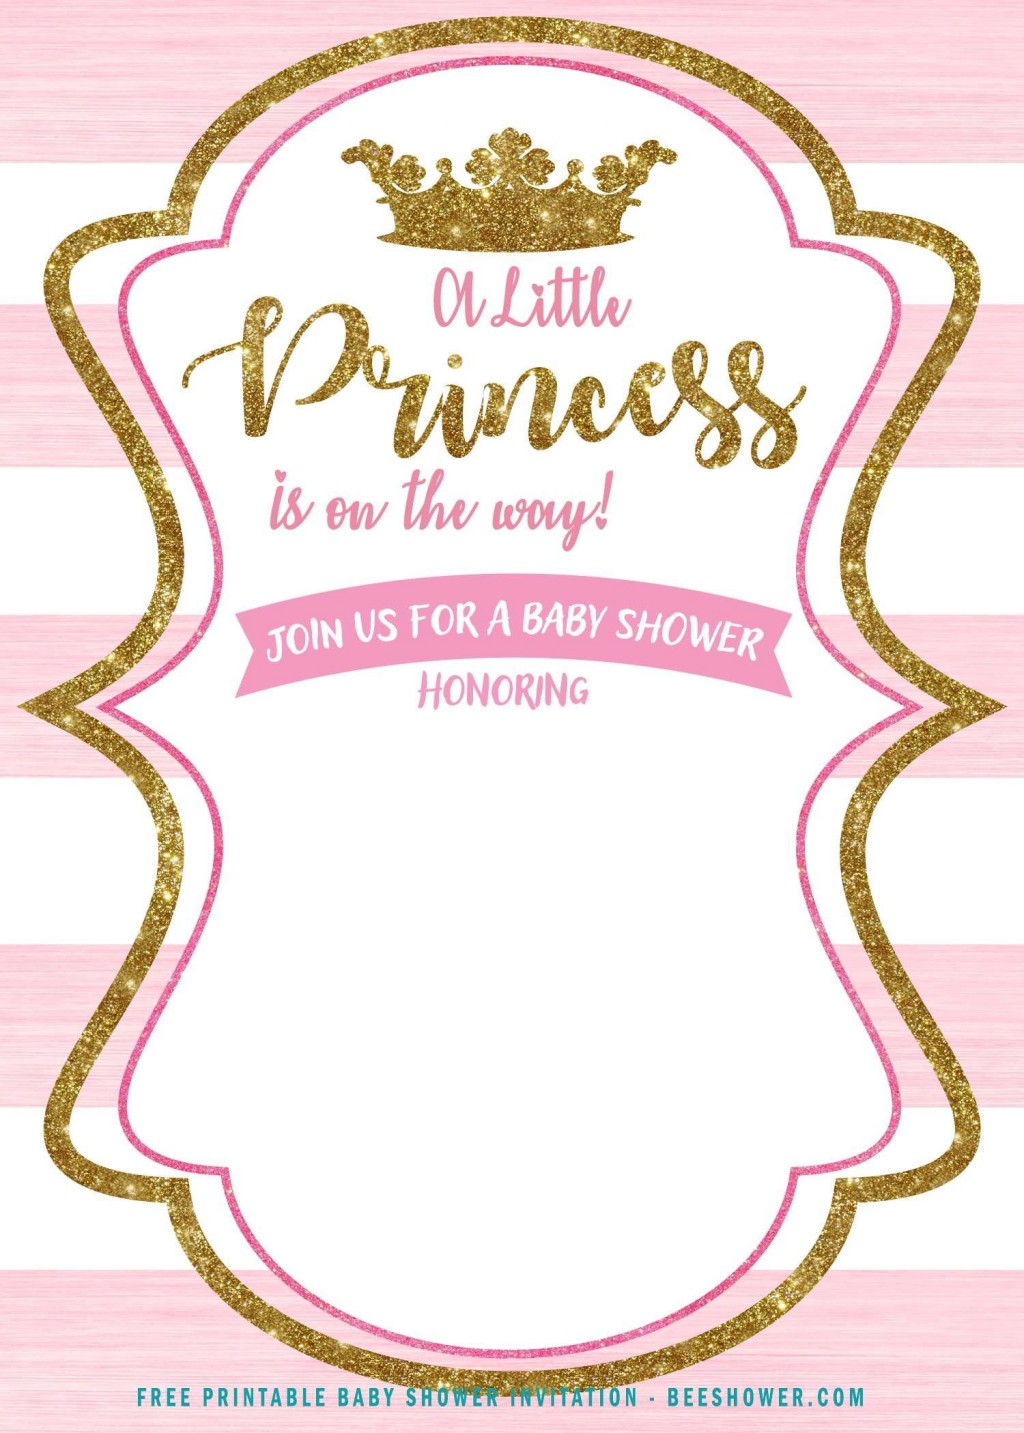 007 Archaicawful Princes Baby Shower Invitation Template Highest Clarity  Templates Little Royal Red DisneyLarge